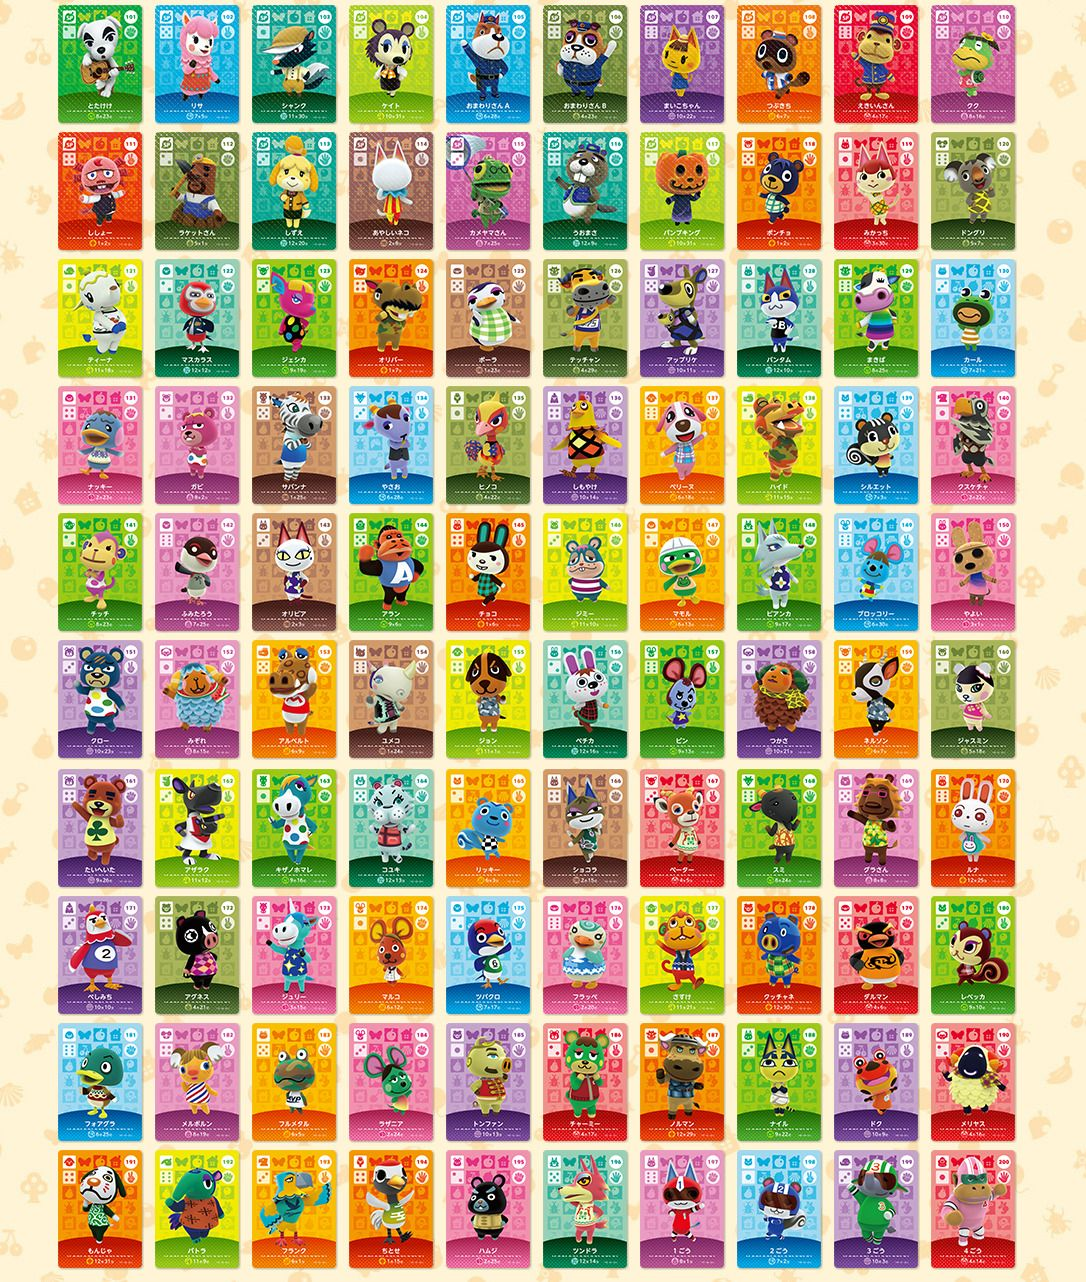 Animal Crossing Amiibo Series 2 Cards 101 200 Card Works In Ac New Horizans Animal Crossing Amiibo Cards Animal Crossing Animal Crossing Characters